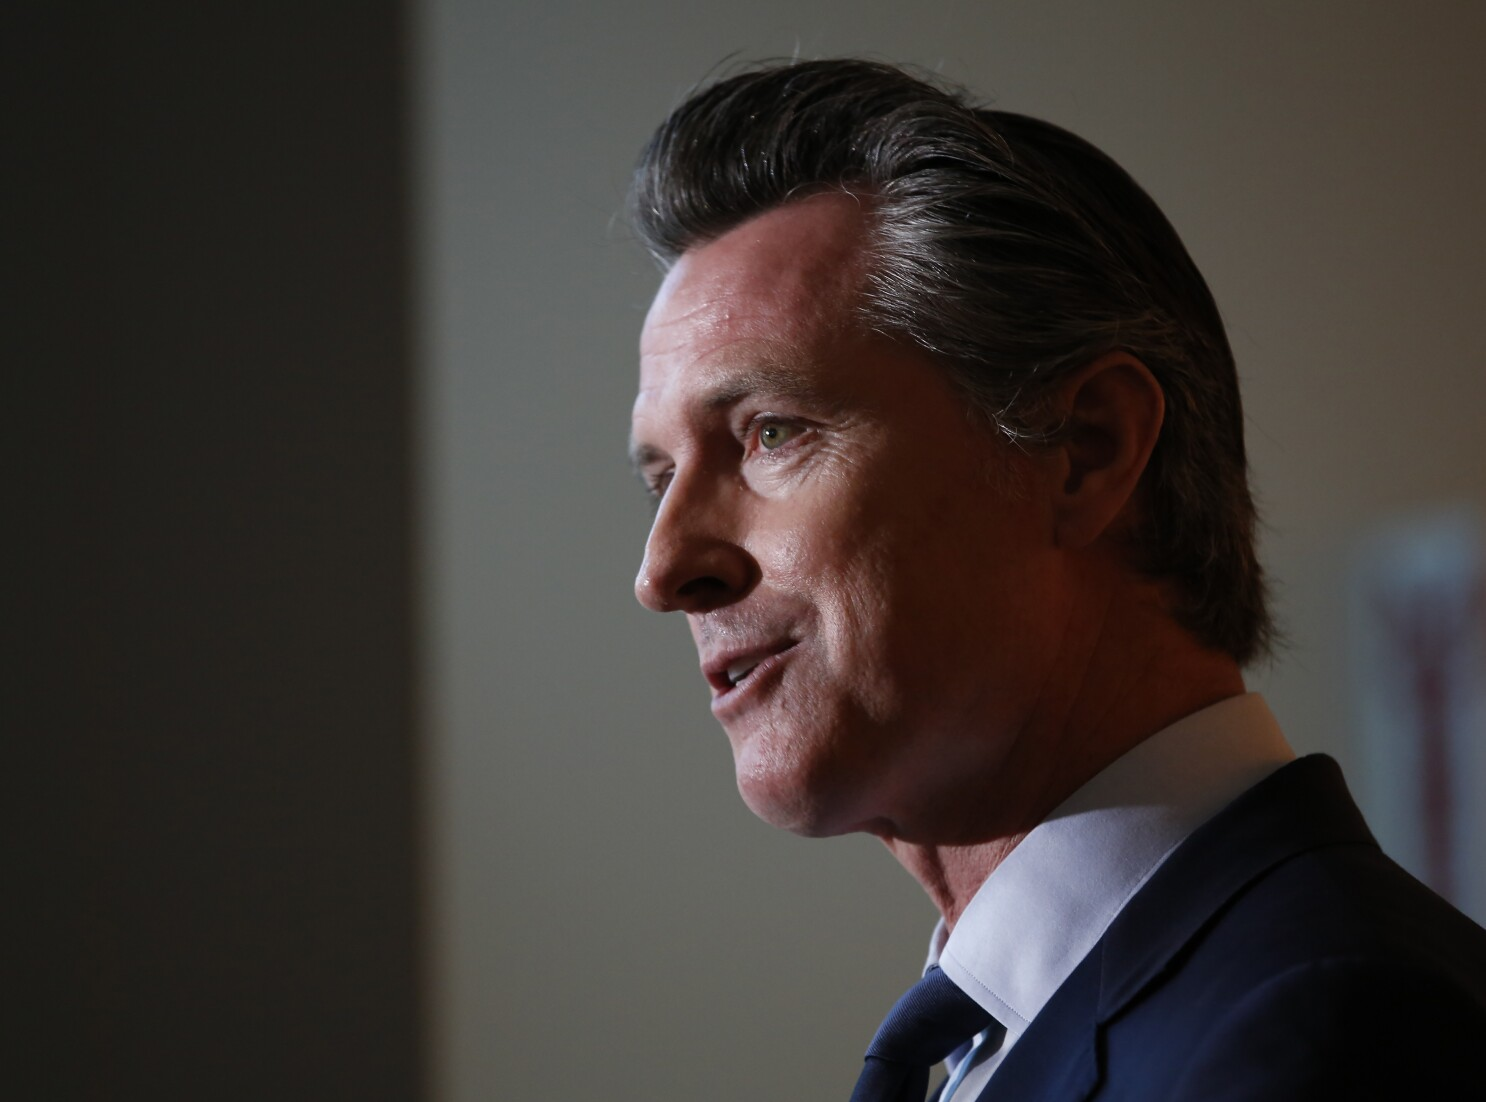 Southern California must plan for 1.3 million new homes in the next decade, Newsom says